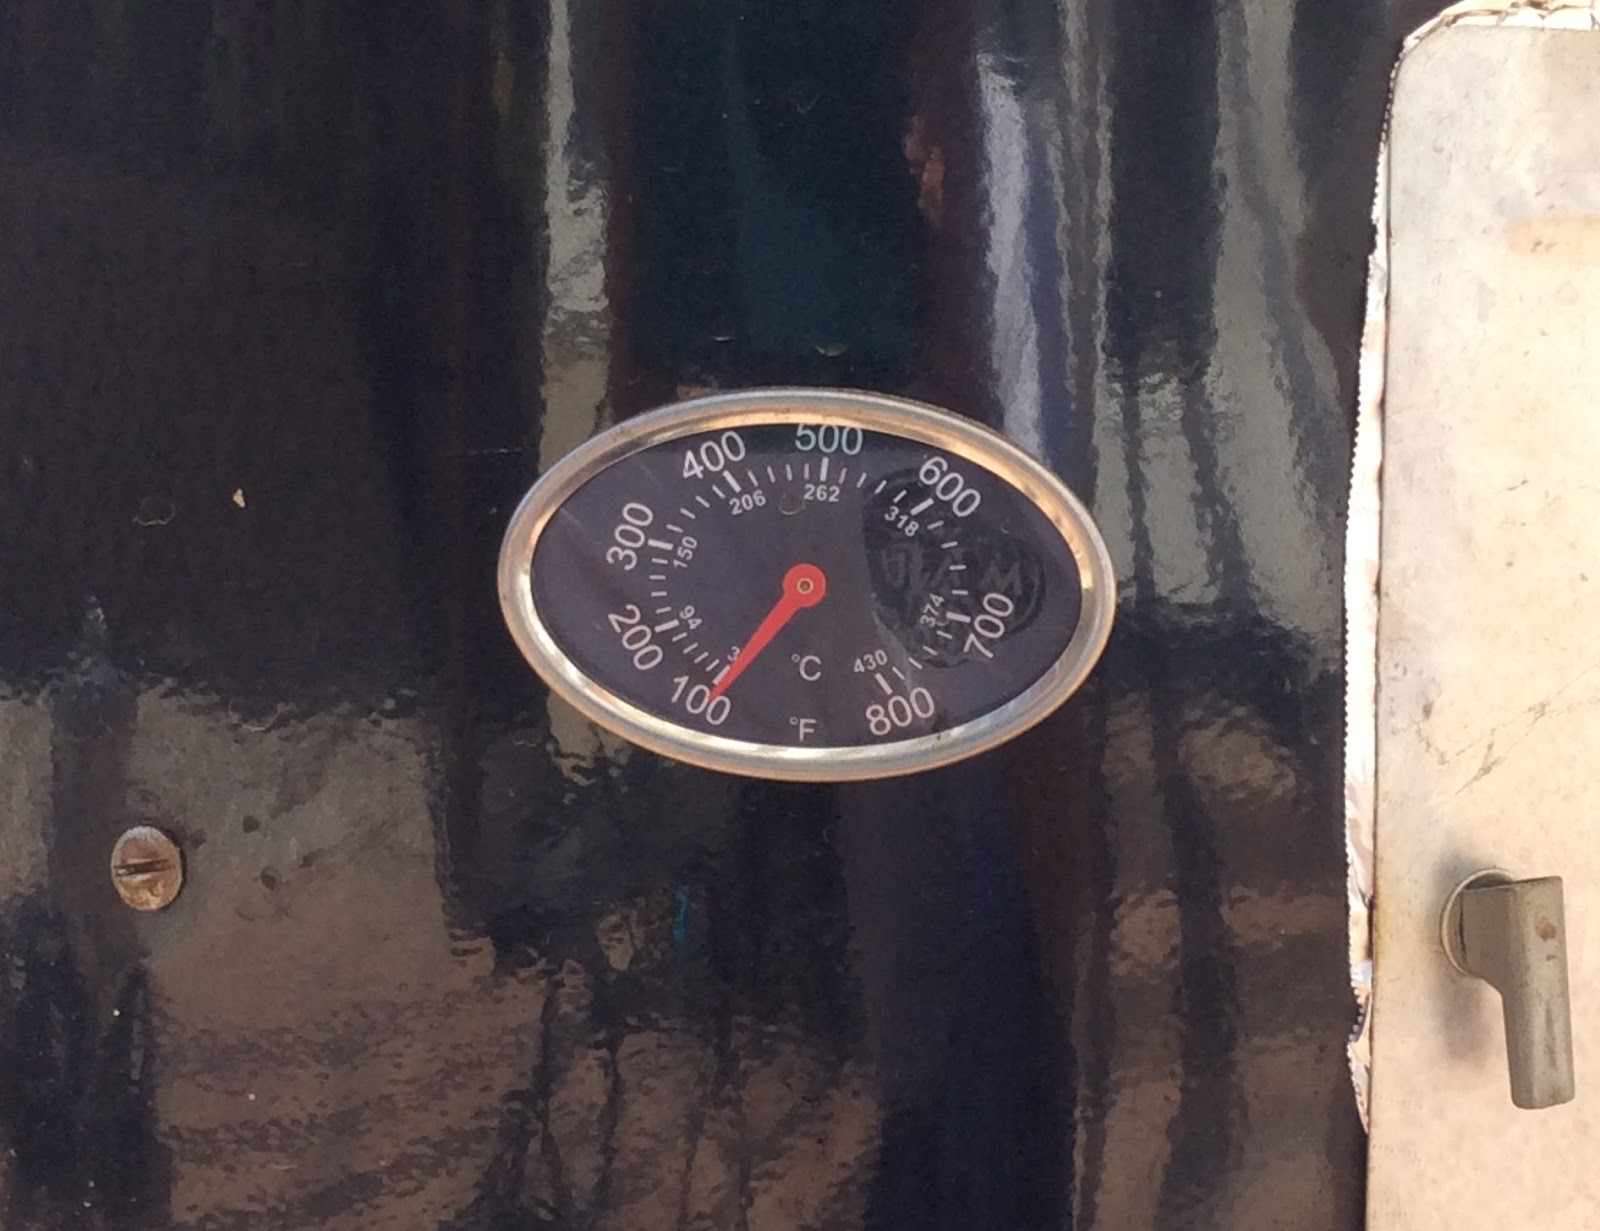 Optimal cold smoking temperature: 100° F or less